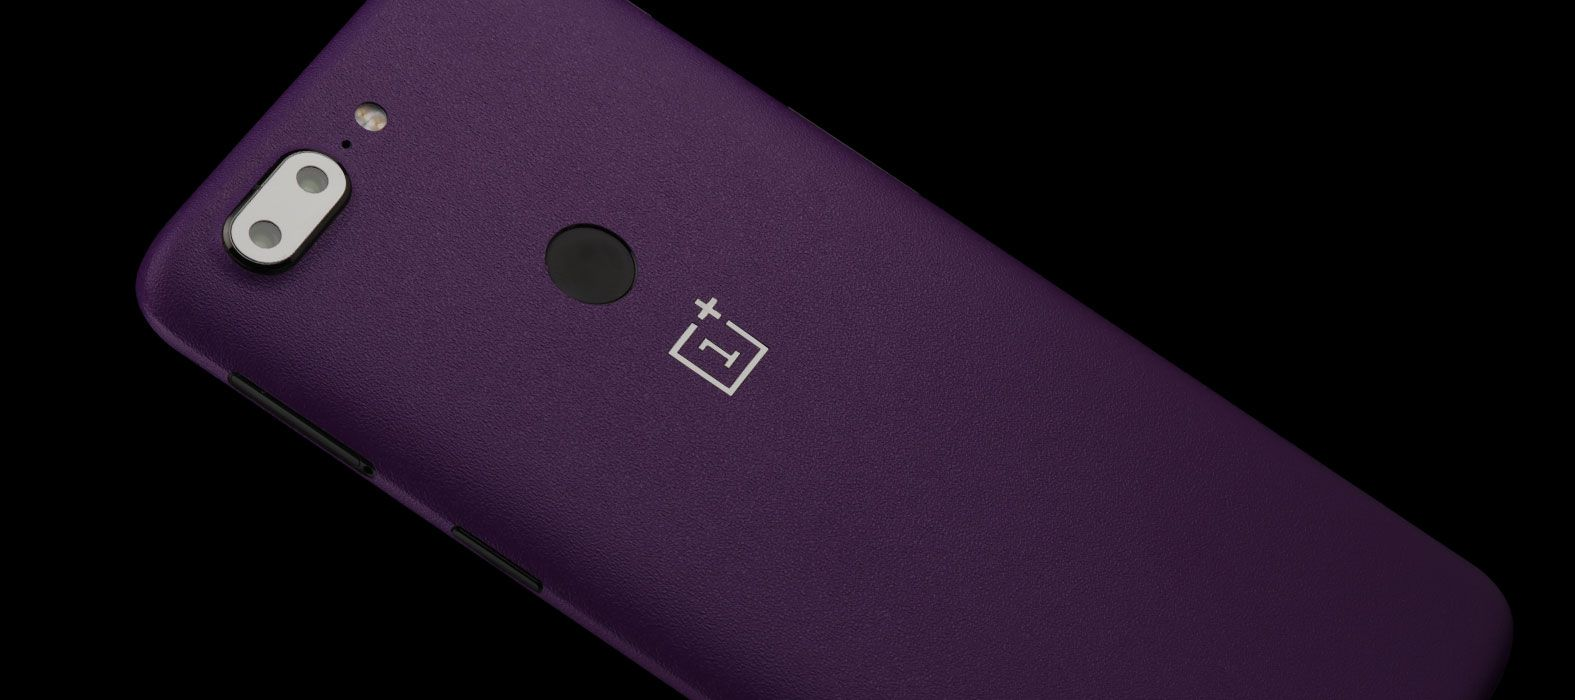 OnePlus 5T Skins, Decals, Wraps - Sandstone purple